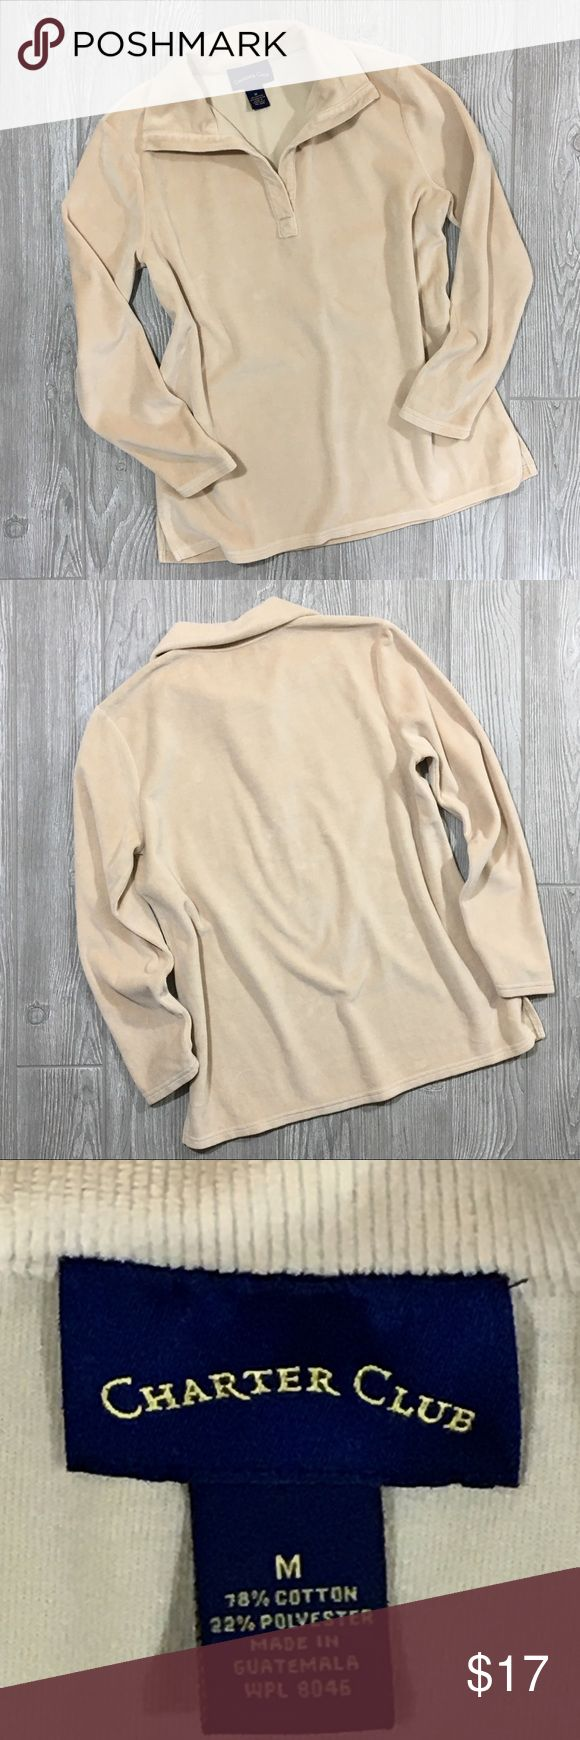 """Charter Club Top Camel colored long sleeve top. Very soft and comfortable!  25 1/2"""" Length / 19 1/2"""" Chest / 24"""" Sleeve. Size M Charter Club Tops"""